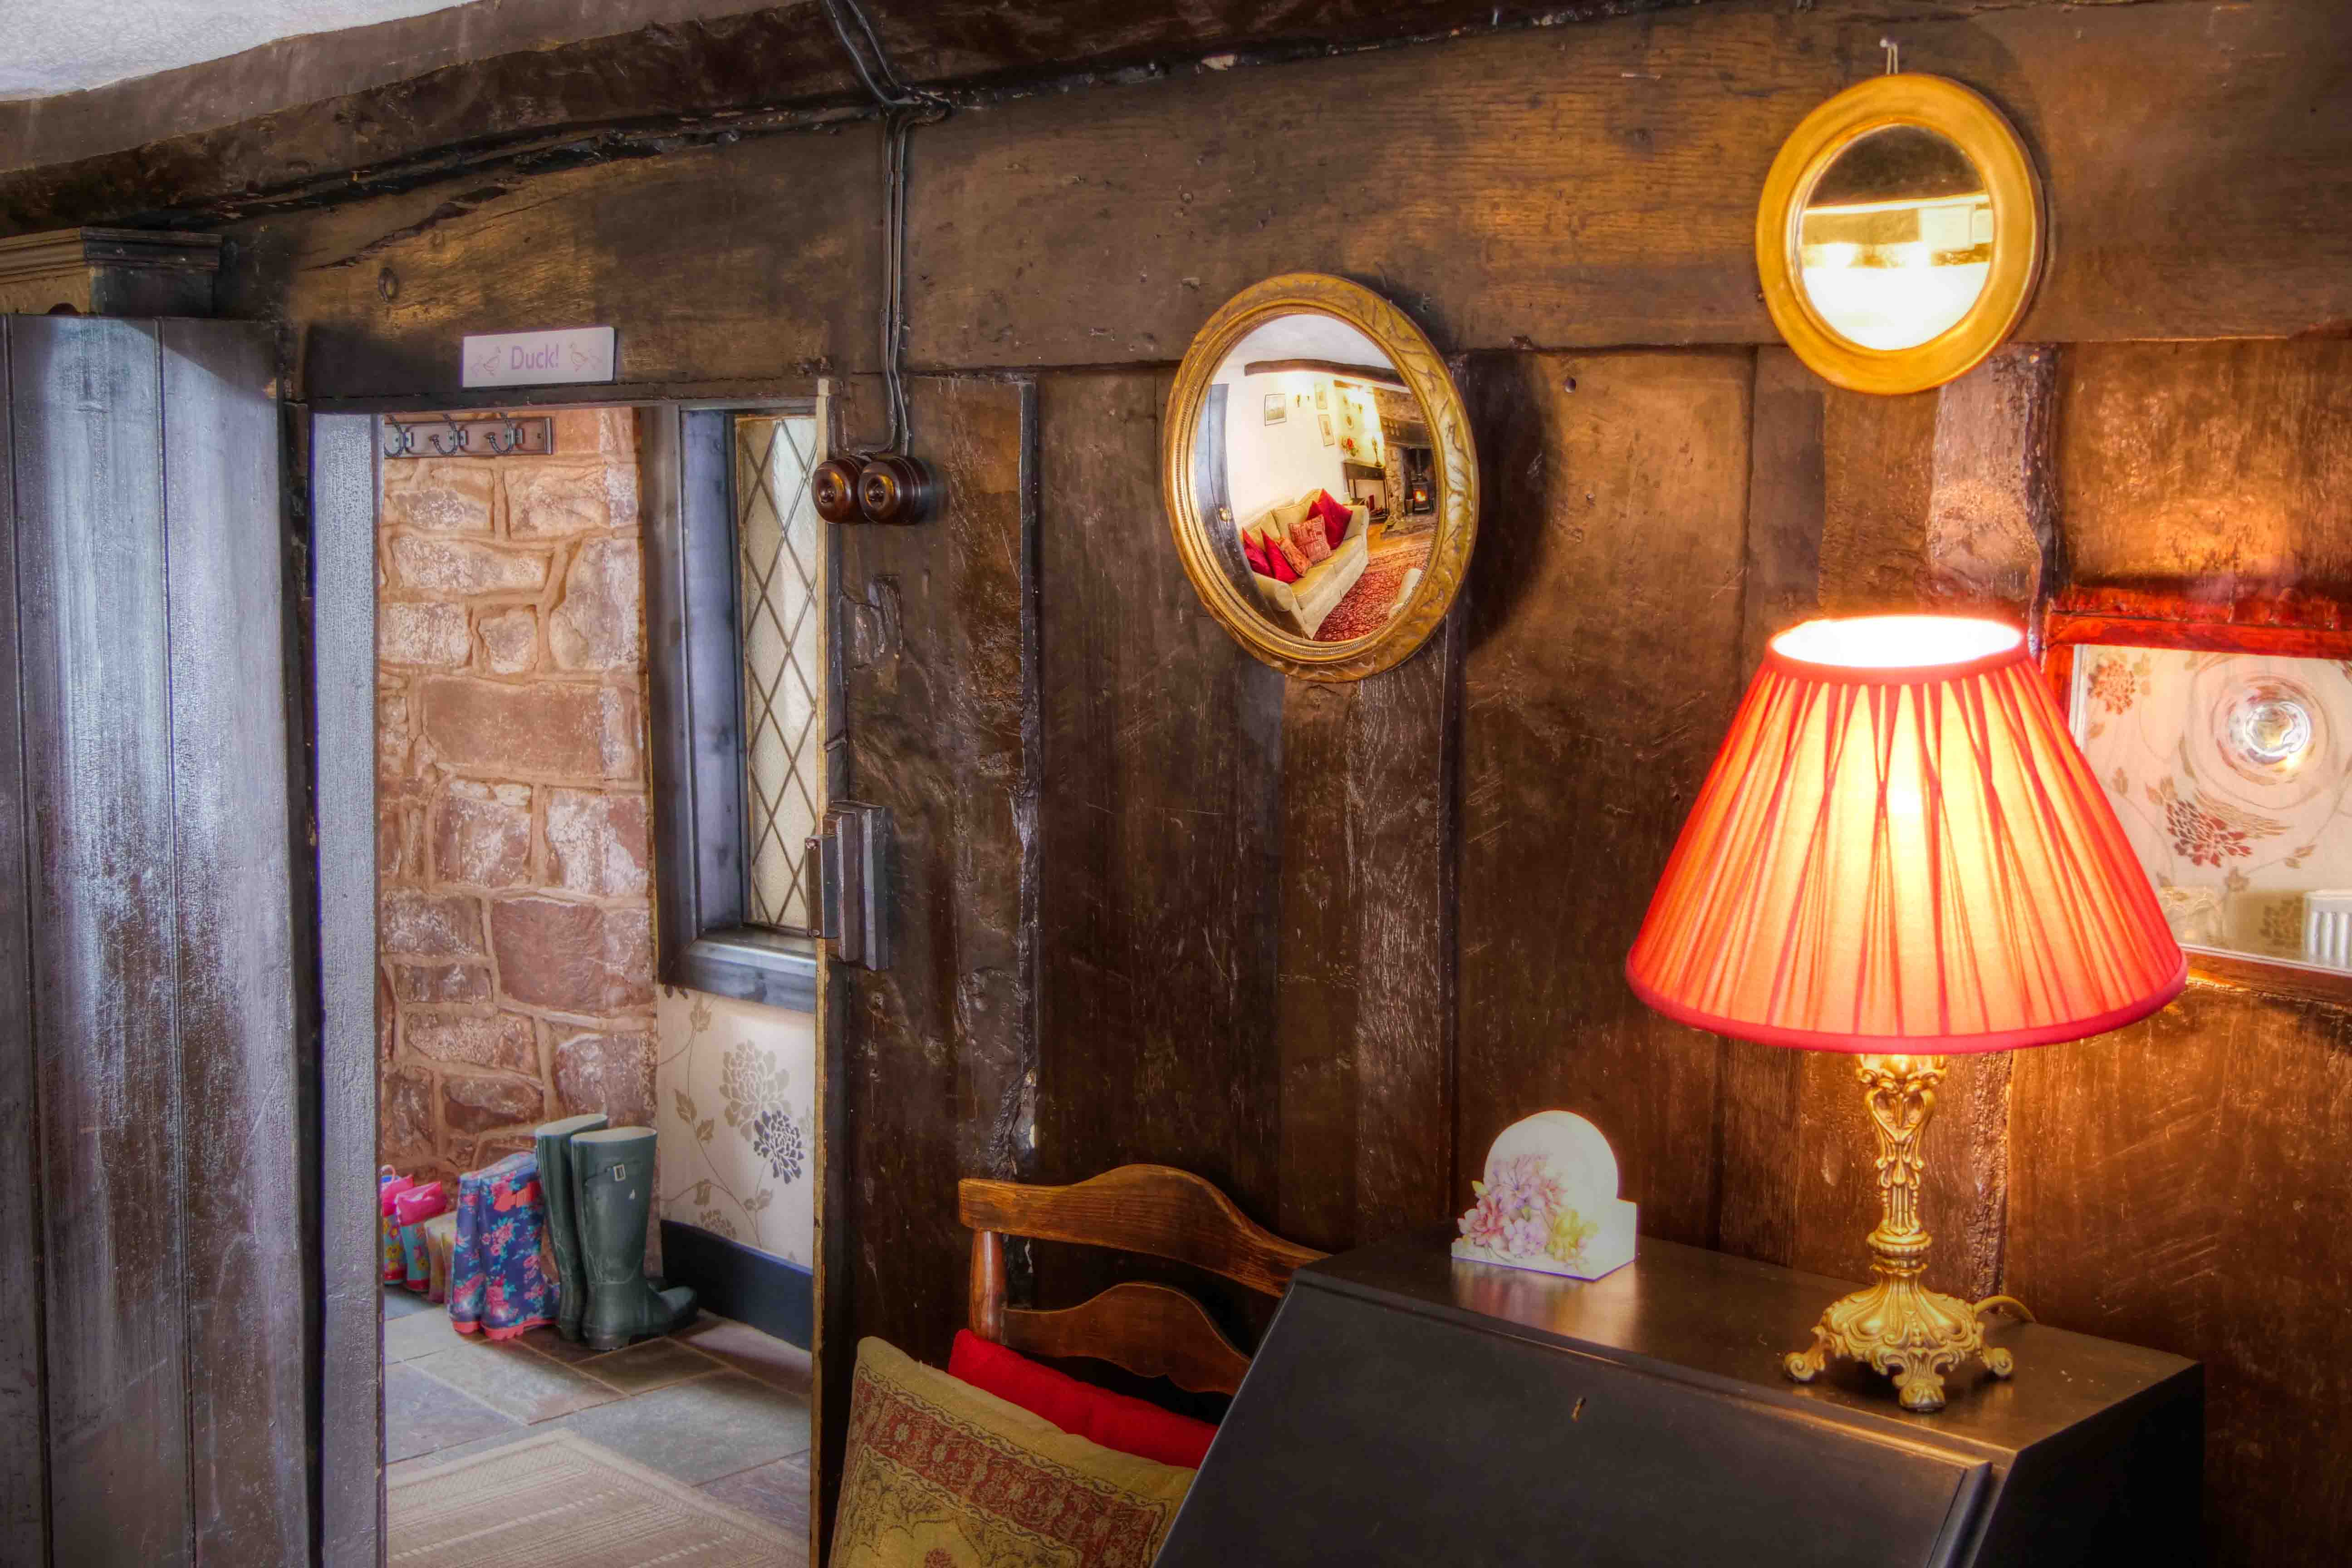 Medieval Accommodation - Living Like a Monarch